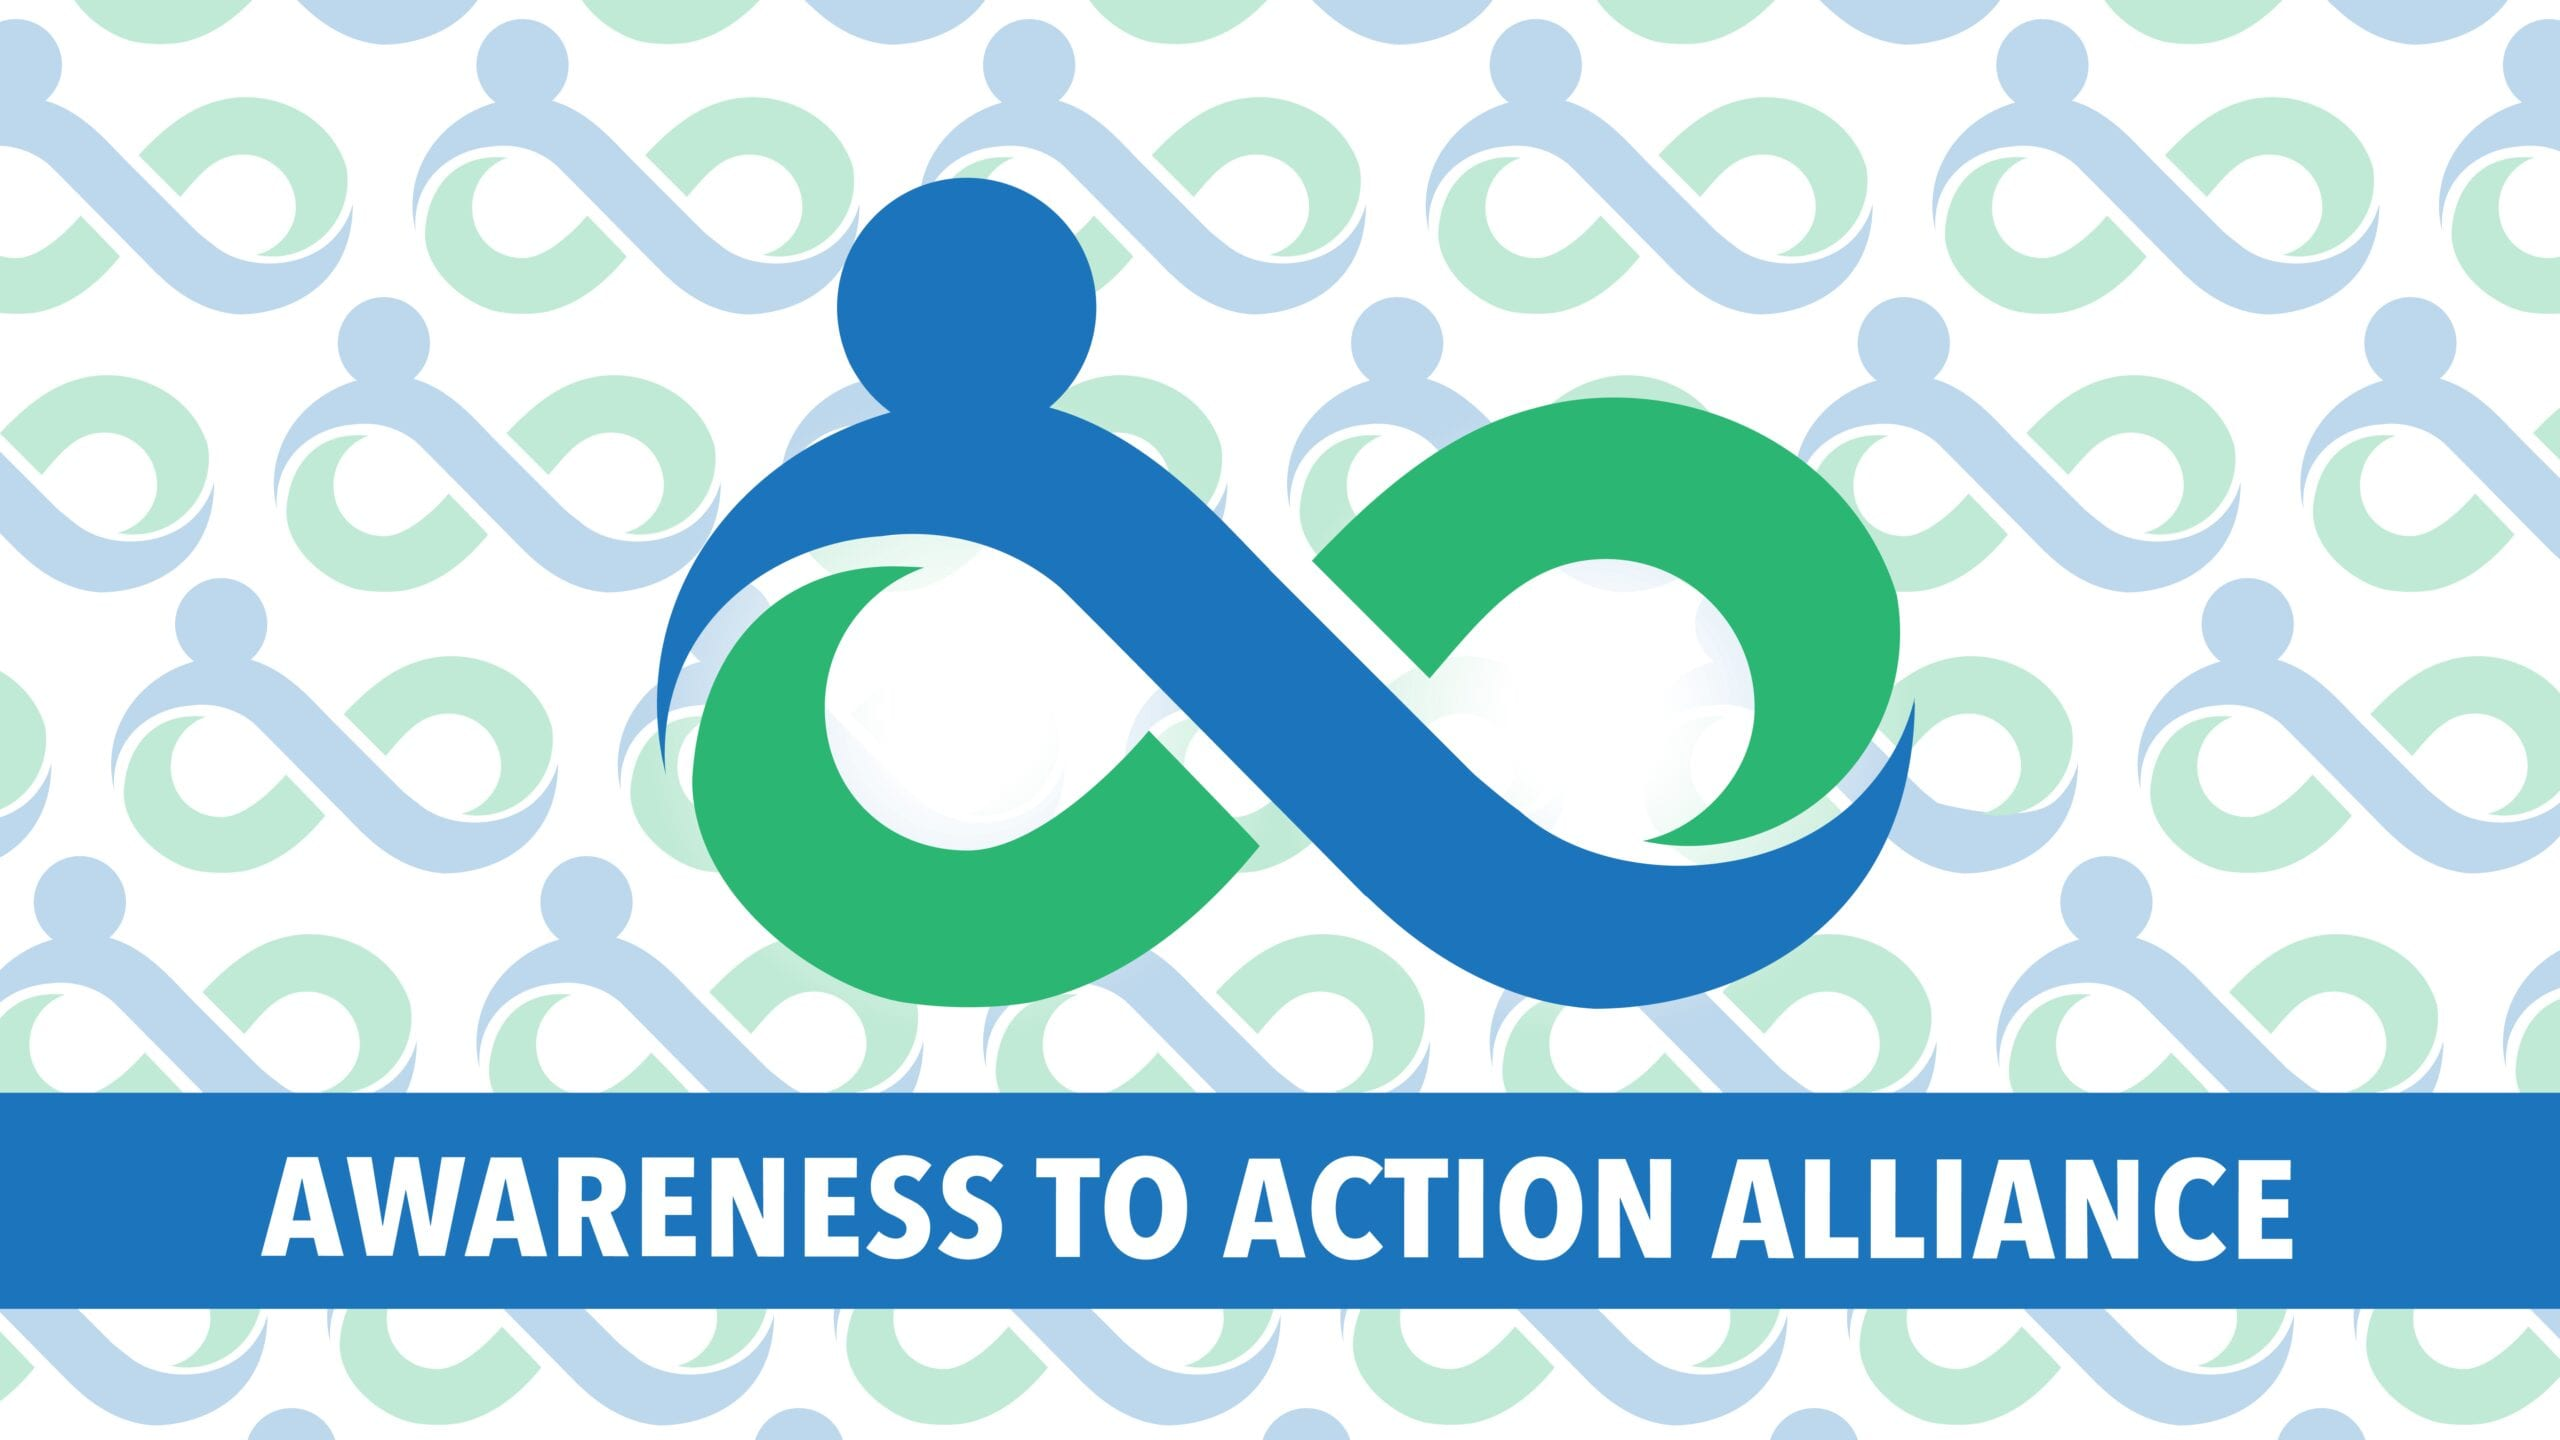 Awareness to Action Alliance